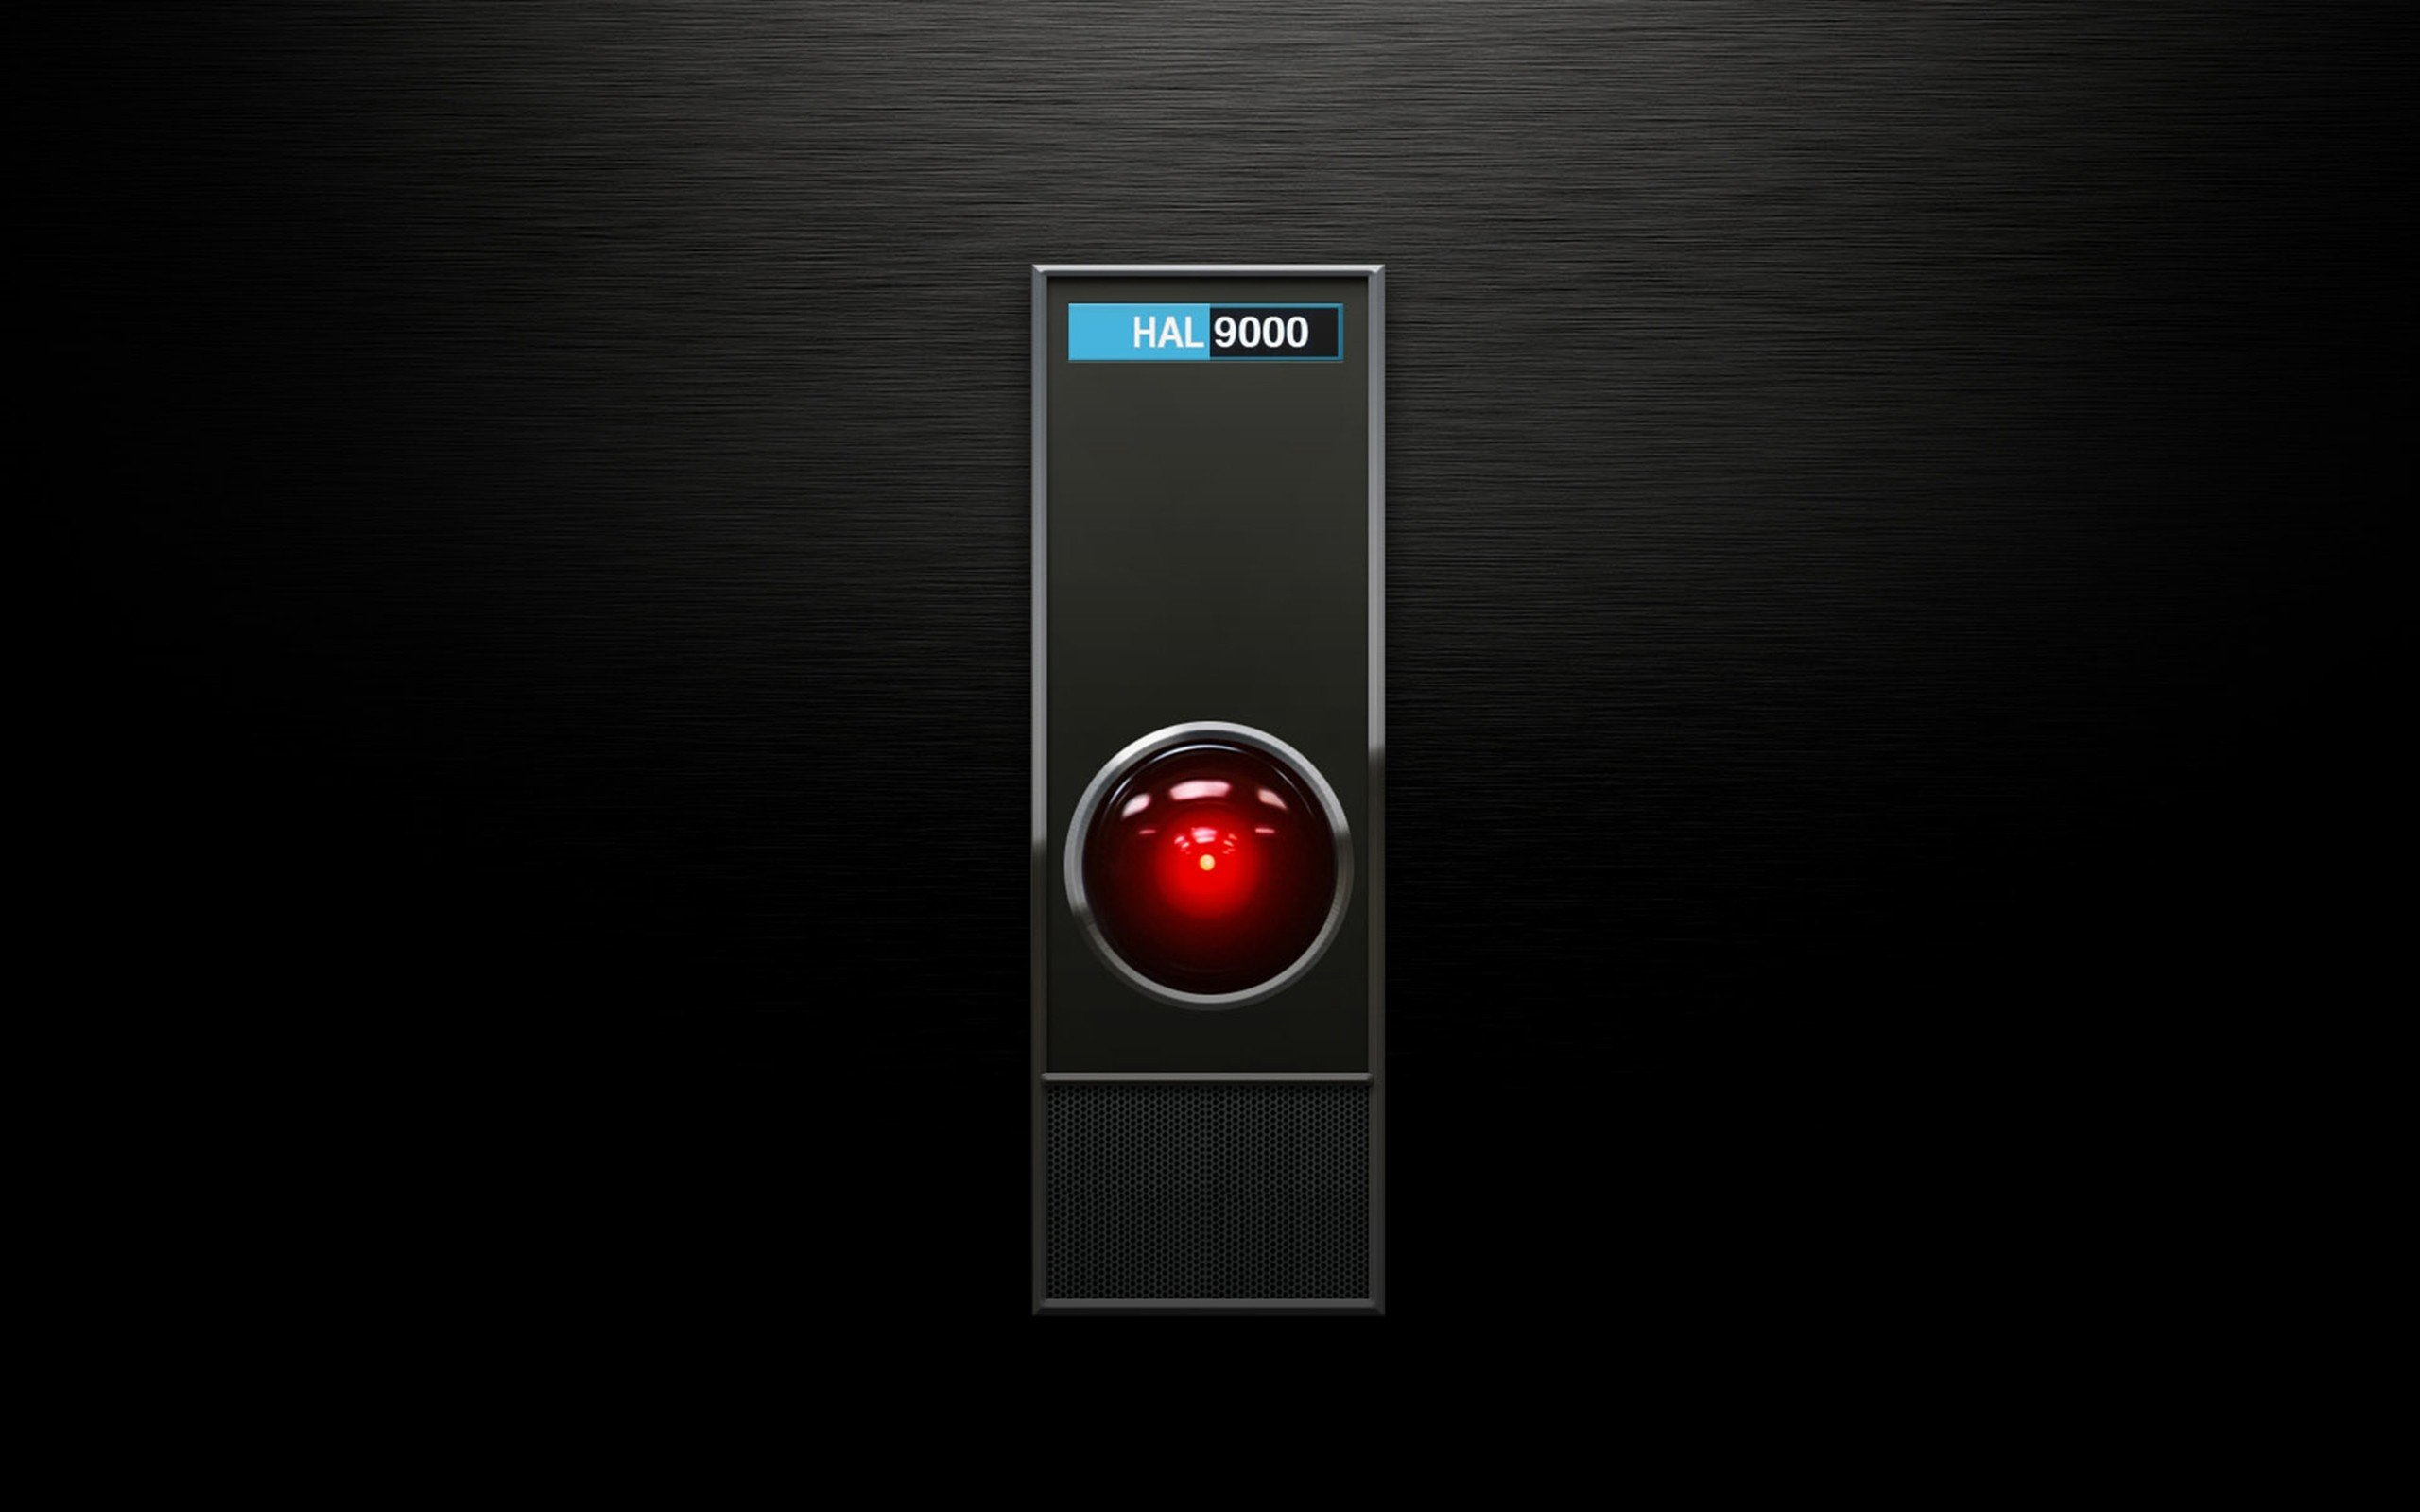 2001 a space odyssey hal 9000 hd wallpapers desktop - 2001 a space odyssey wallpaper ...